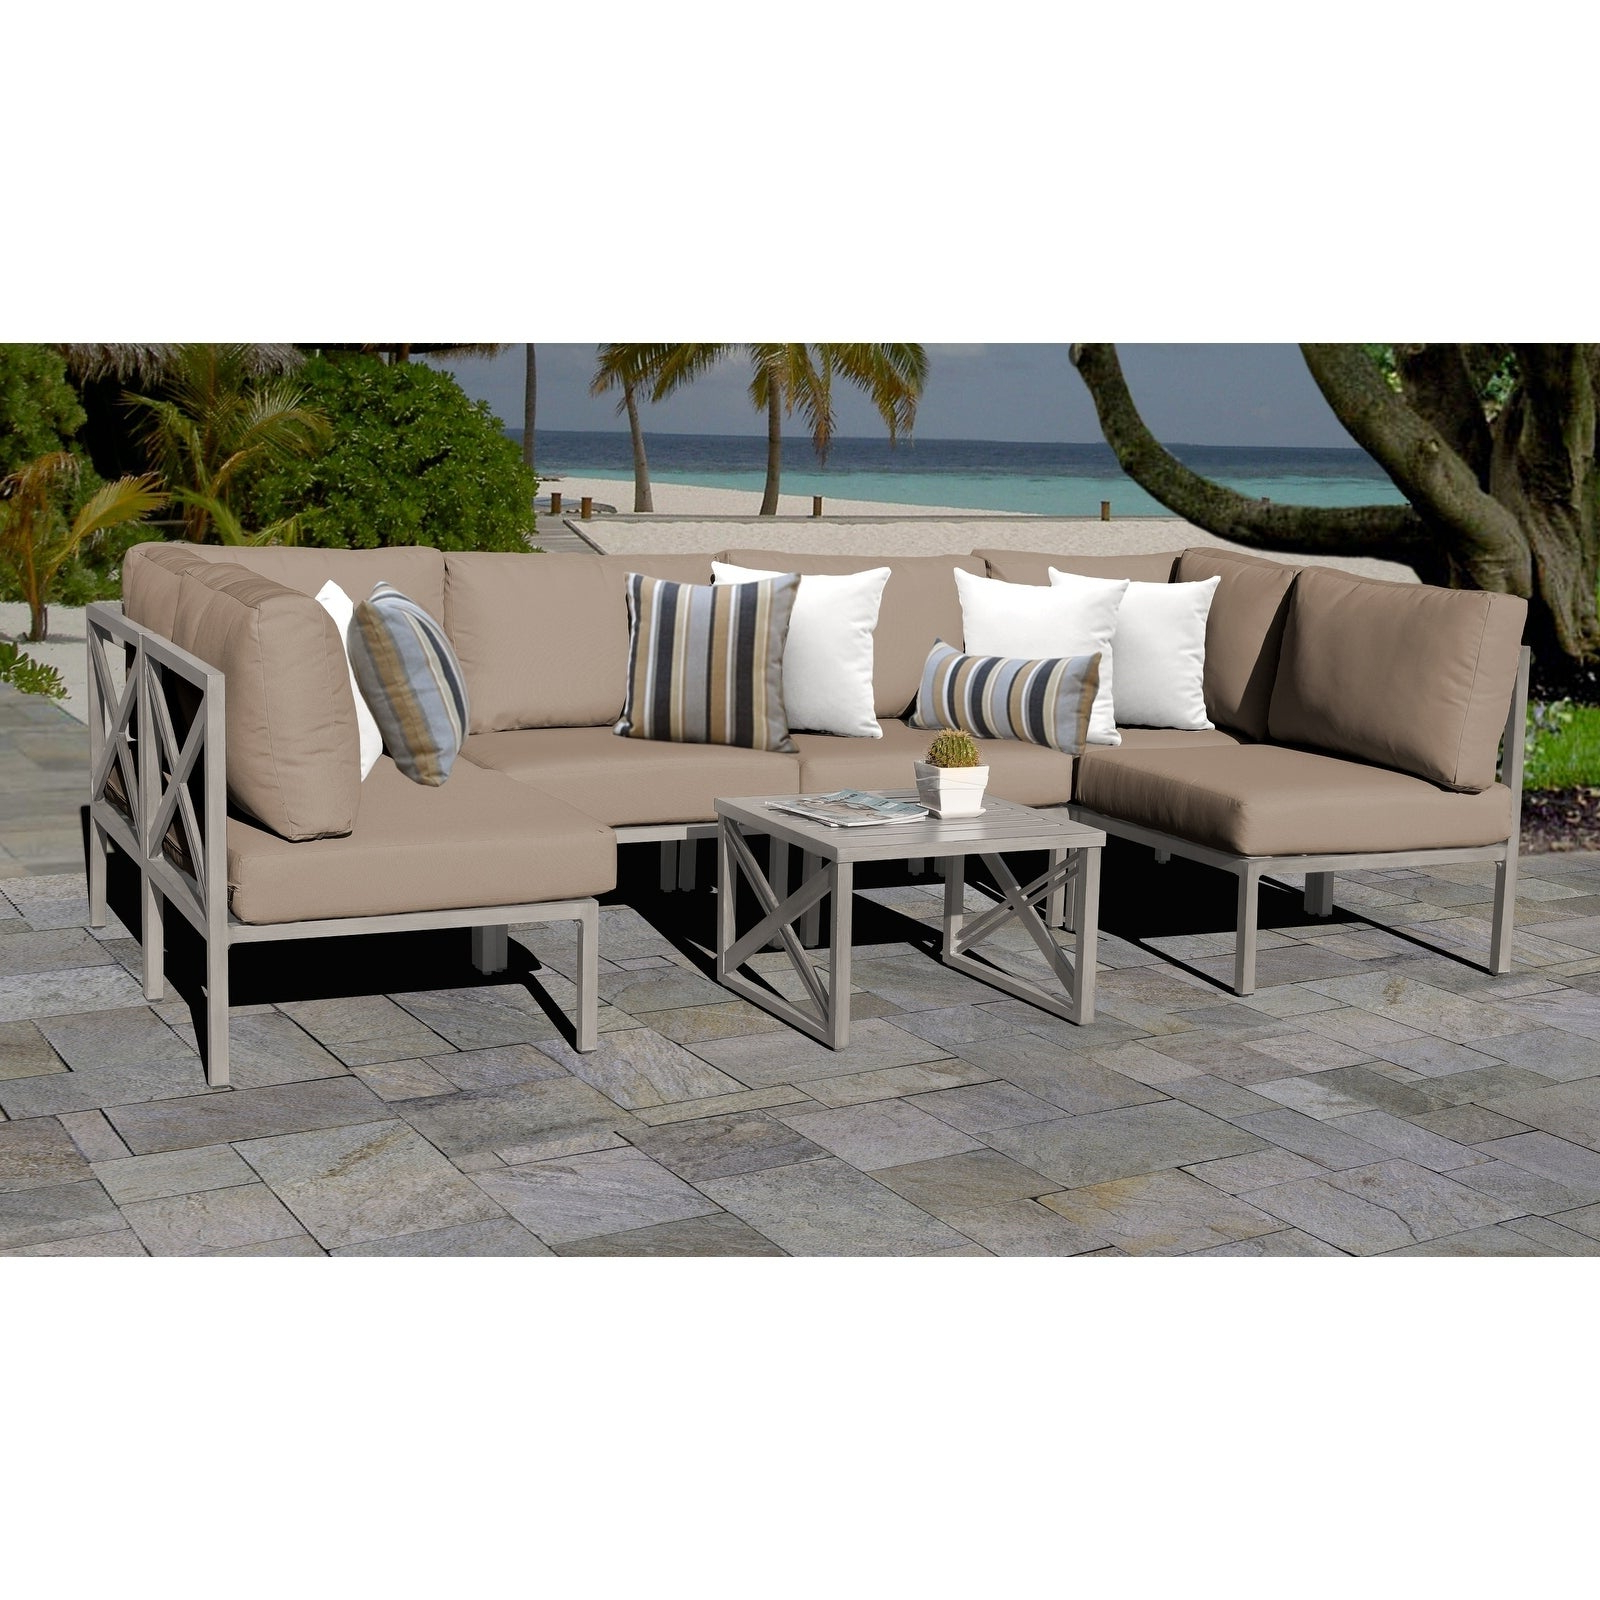 Carlisle 7 Piece Outdoor Wicker Patio Furniture Set 07A With Regard To Most Popular Carlisle Patio Sofas With Cushions (View 4 of 25)